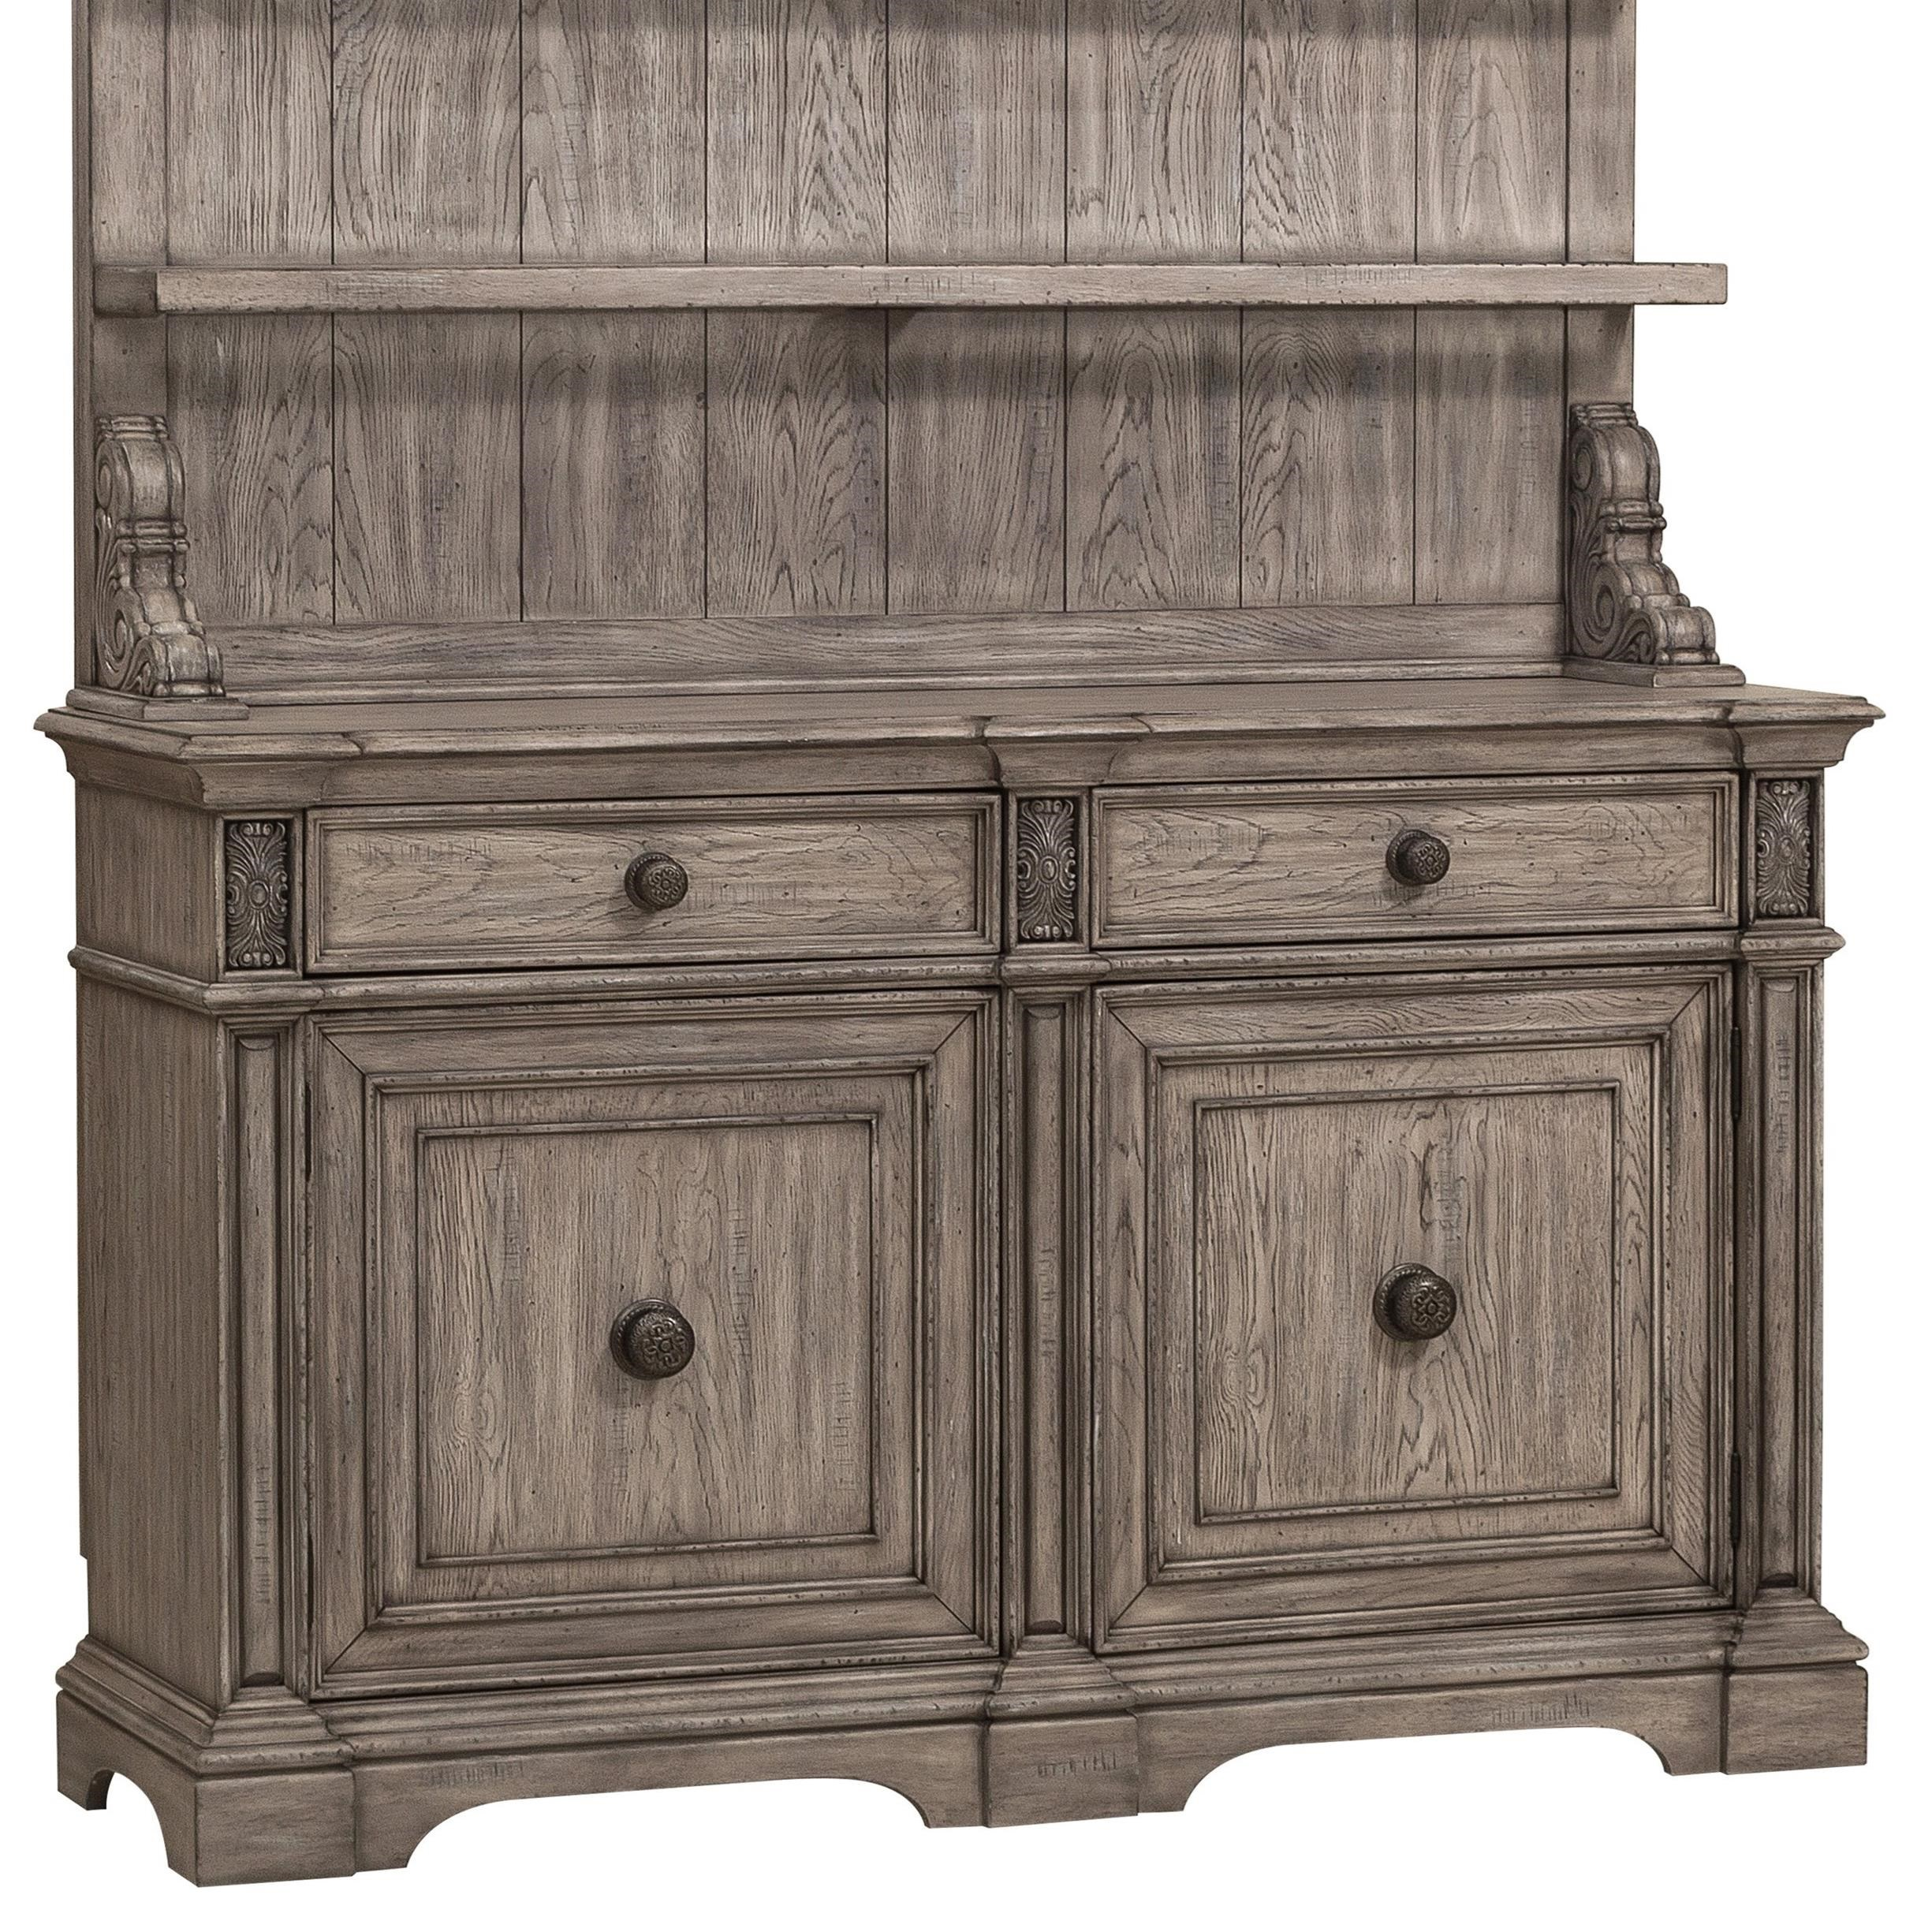 Windmere Dining Room Buffet by Klaussner International at Darvin Furniture